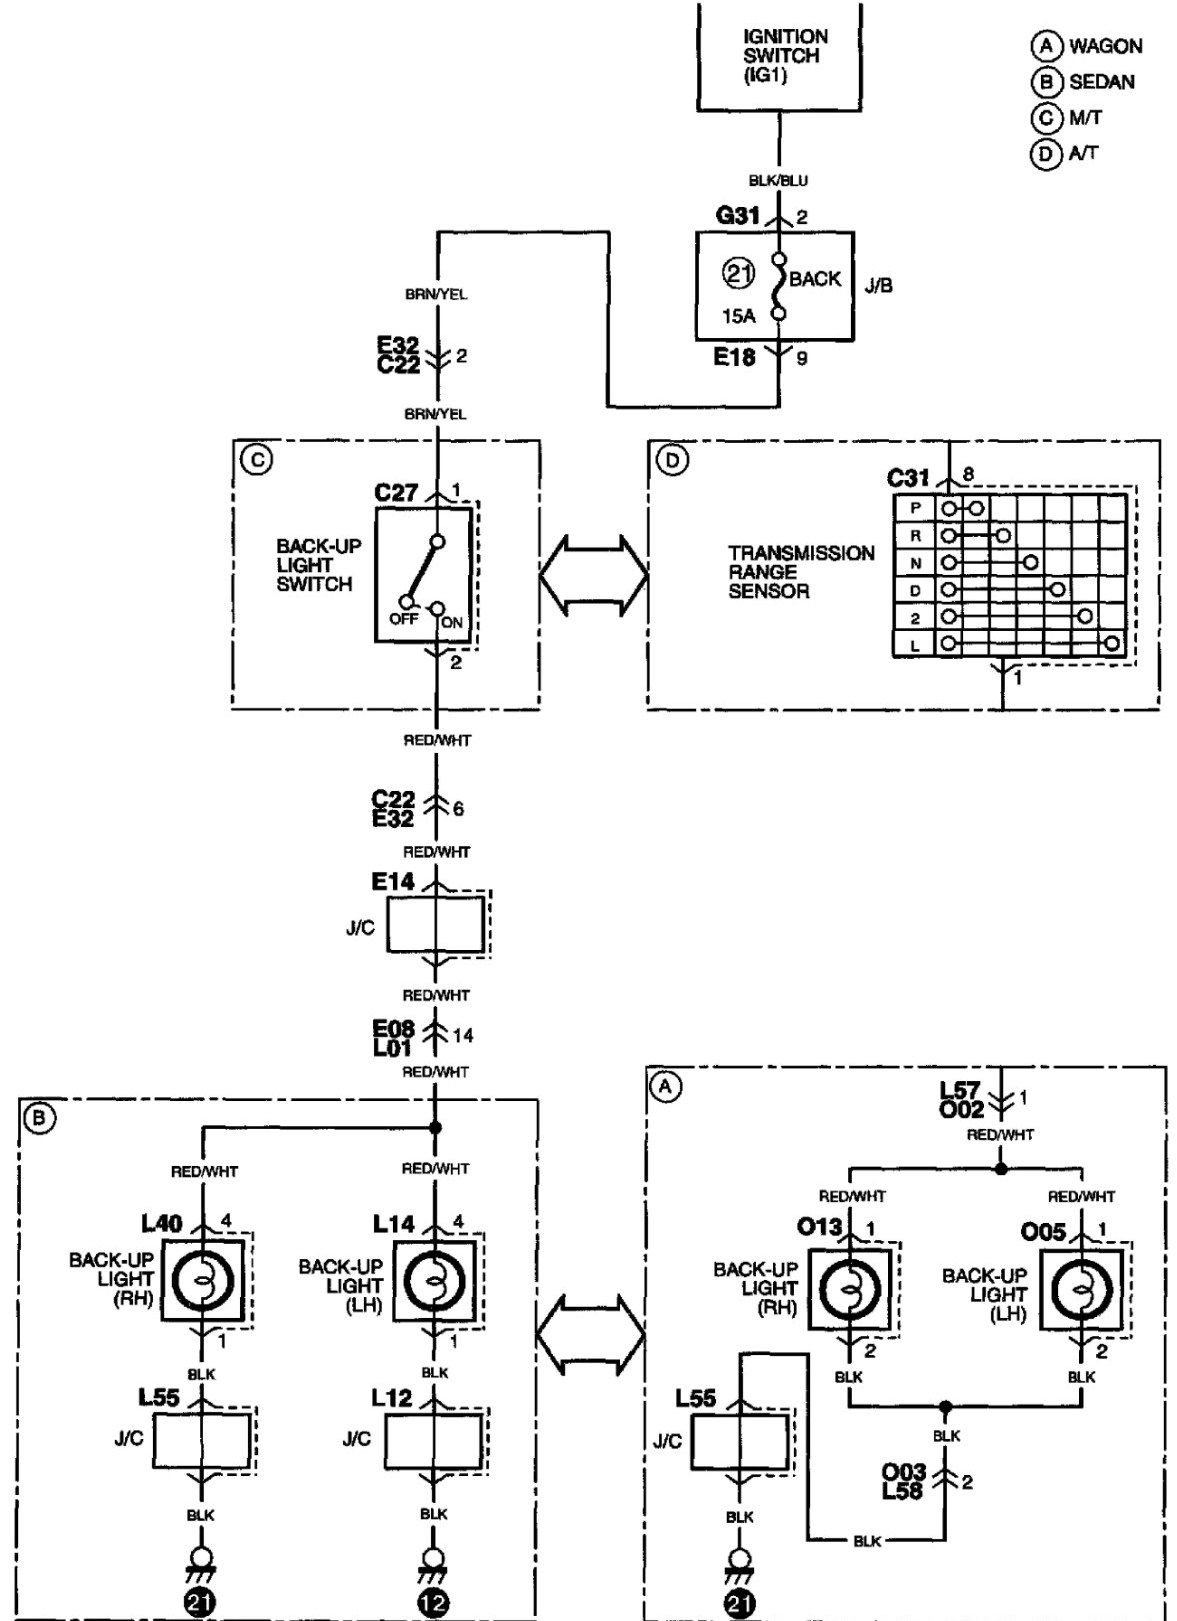 fuse diagram for 1999 suzuki esteem html